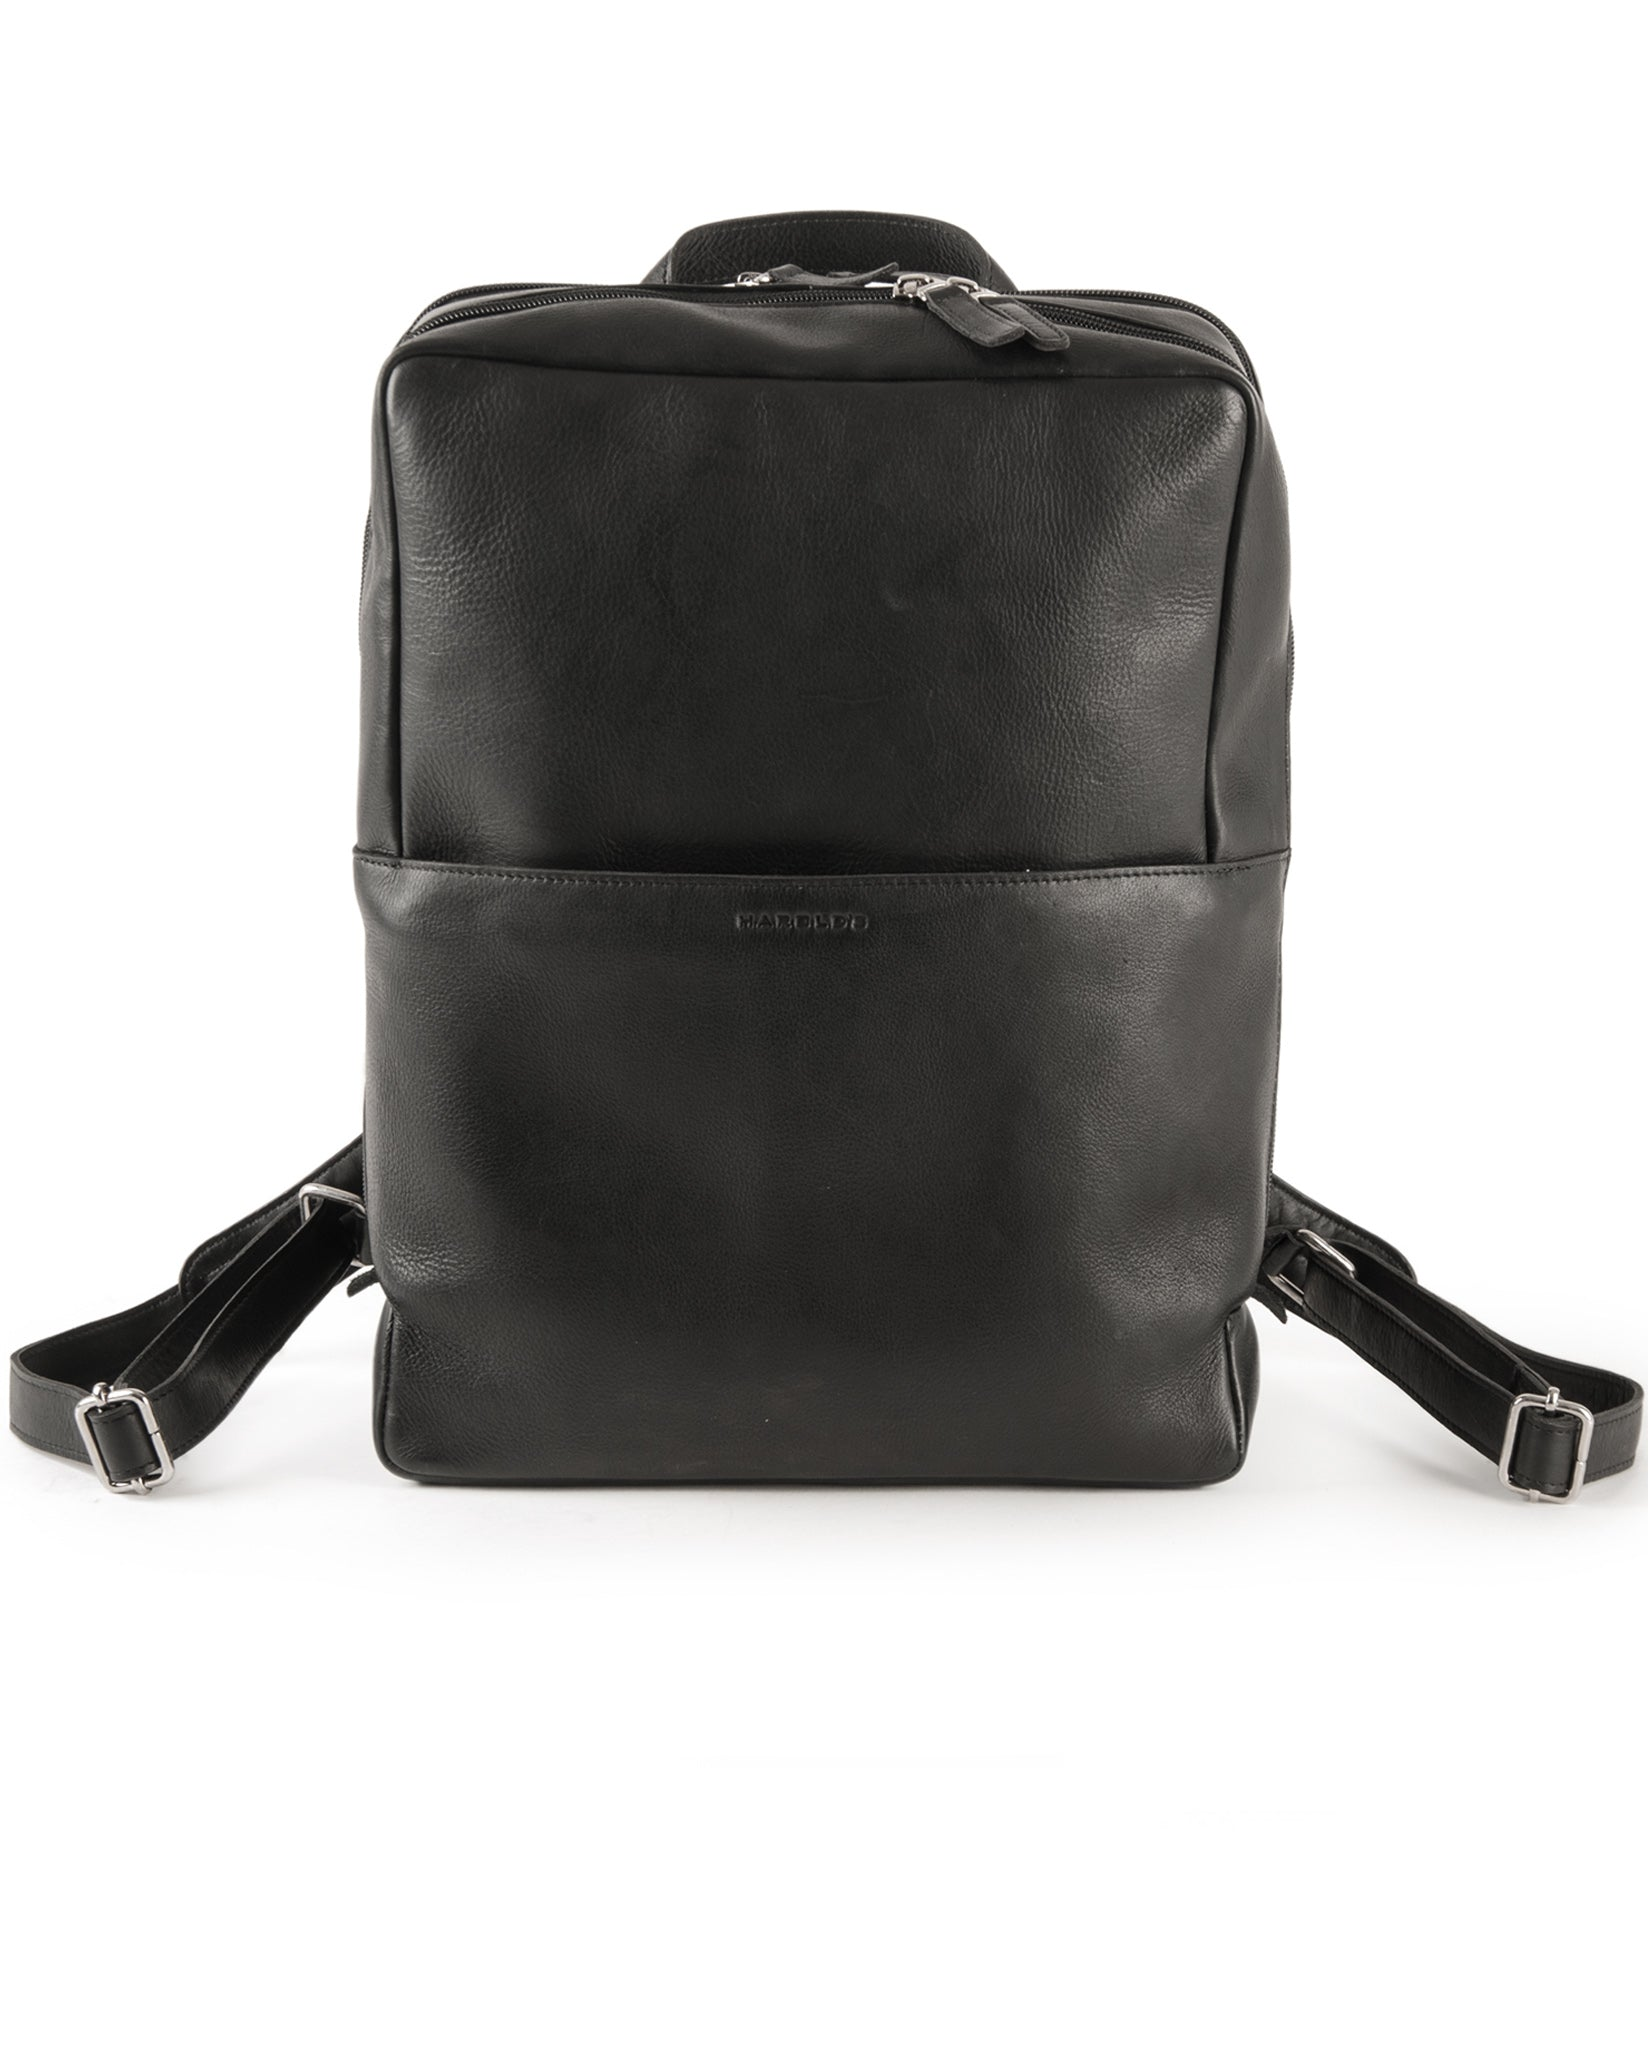 Campo Notebookrucksack